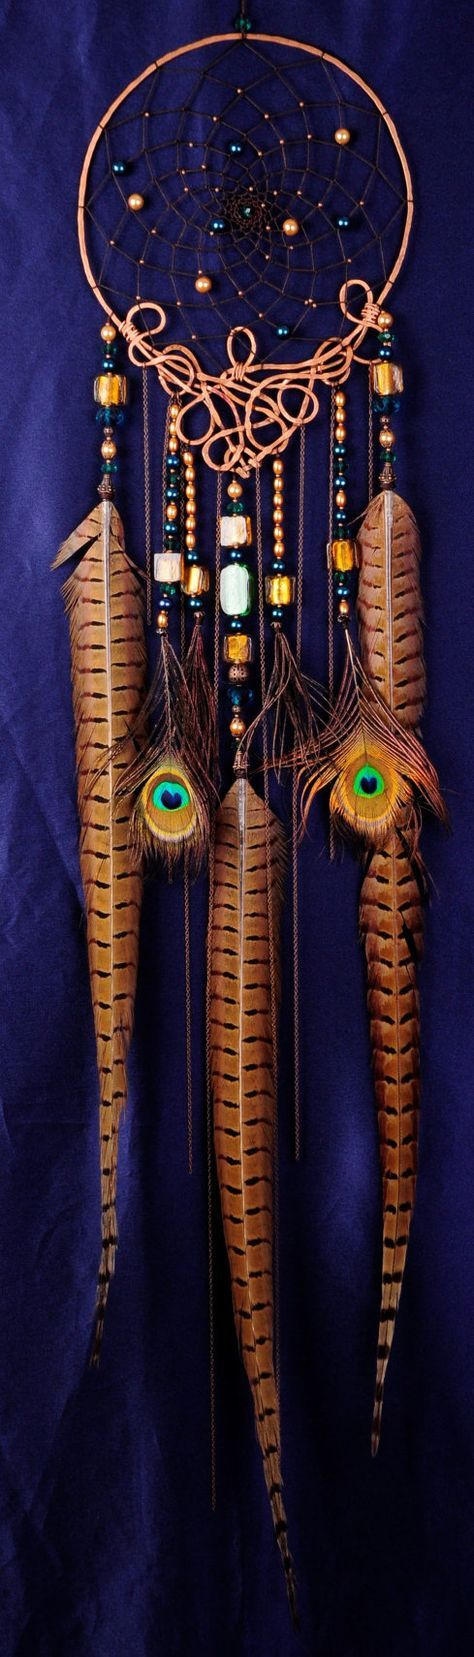 SOLD Custom-made for 4-5 days Dreamcatcher IZIDA Copper gift idea Dream Catcher Dream сatcher dreamcatchers boho dreamcatchers wall decor handmade decoration idea gift This amulet like Dreamcatcher - is not just a decoration of the interior. It is a powerful amulet, which is endowed with many properties: - Dreamcatcher protects and ensures a healthy sleep to the owner; Dreams -Lovets helps in practice lucid dreaming. It helps to recognize snovideschyamu himself in a dream, as